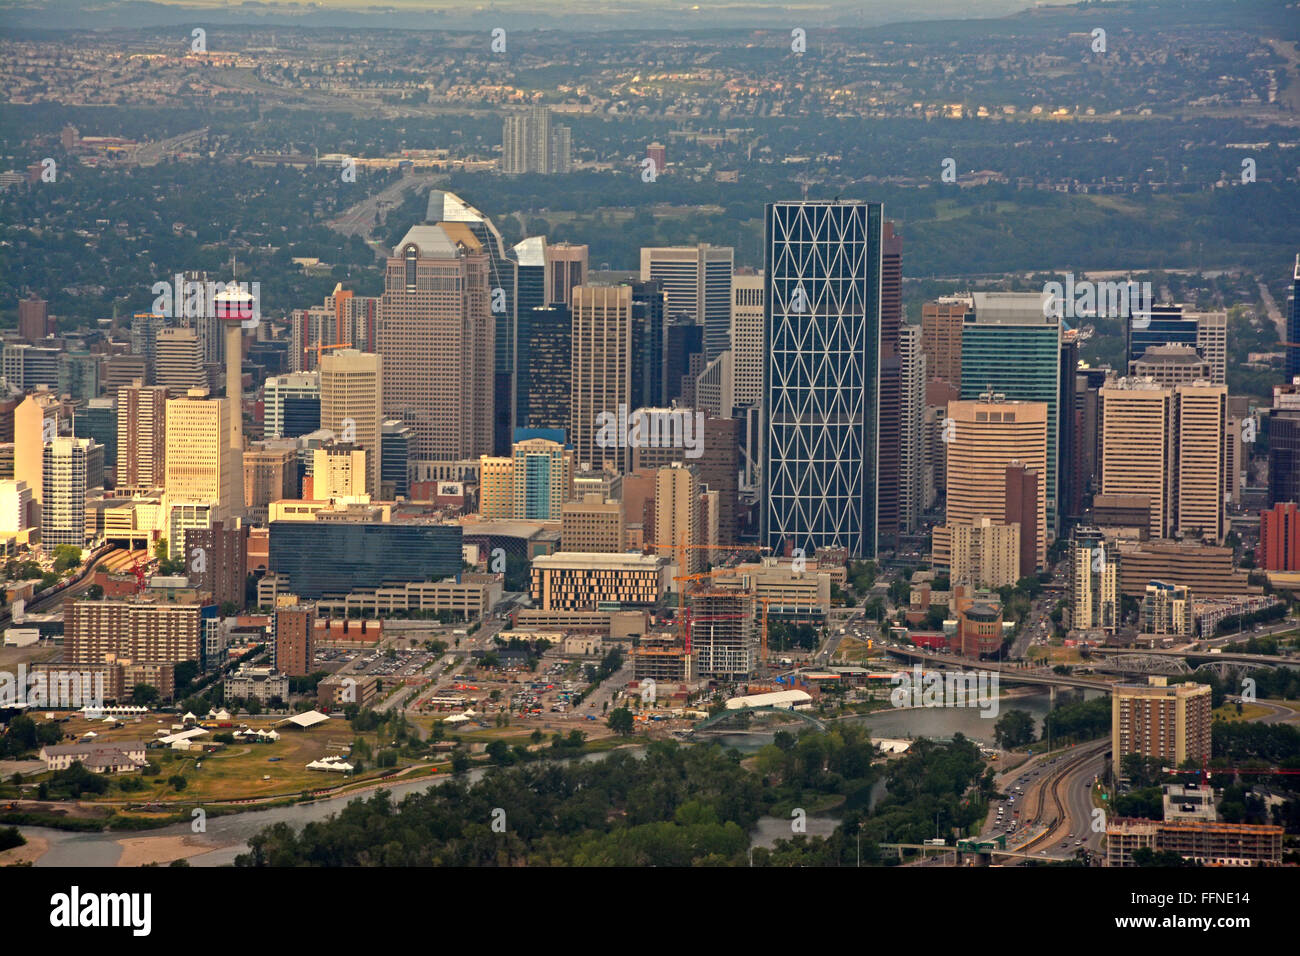 Calgary downtown, Aerial view - Stock Image